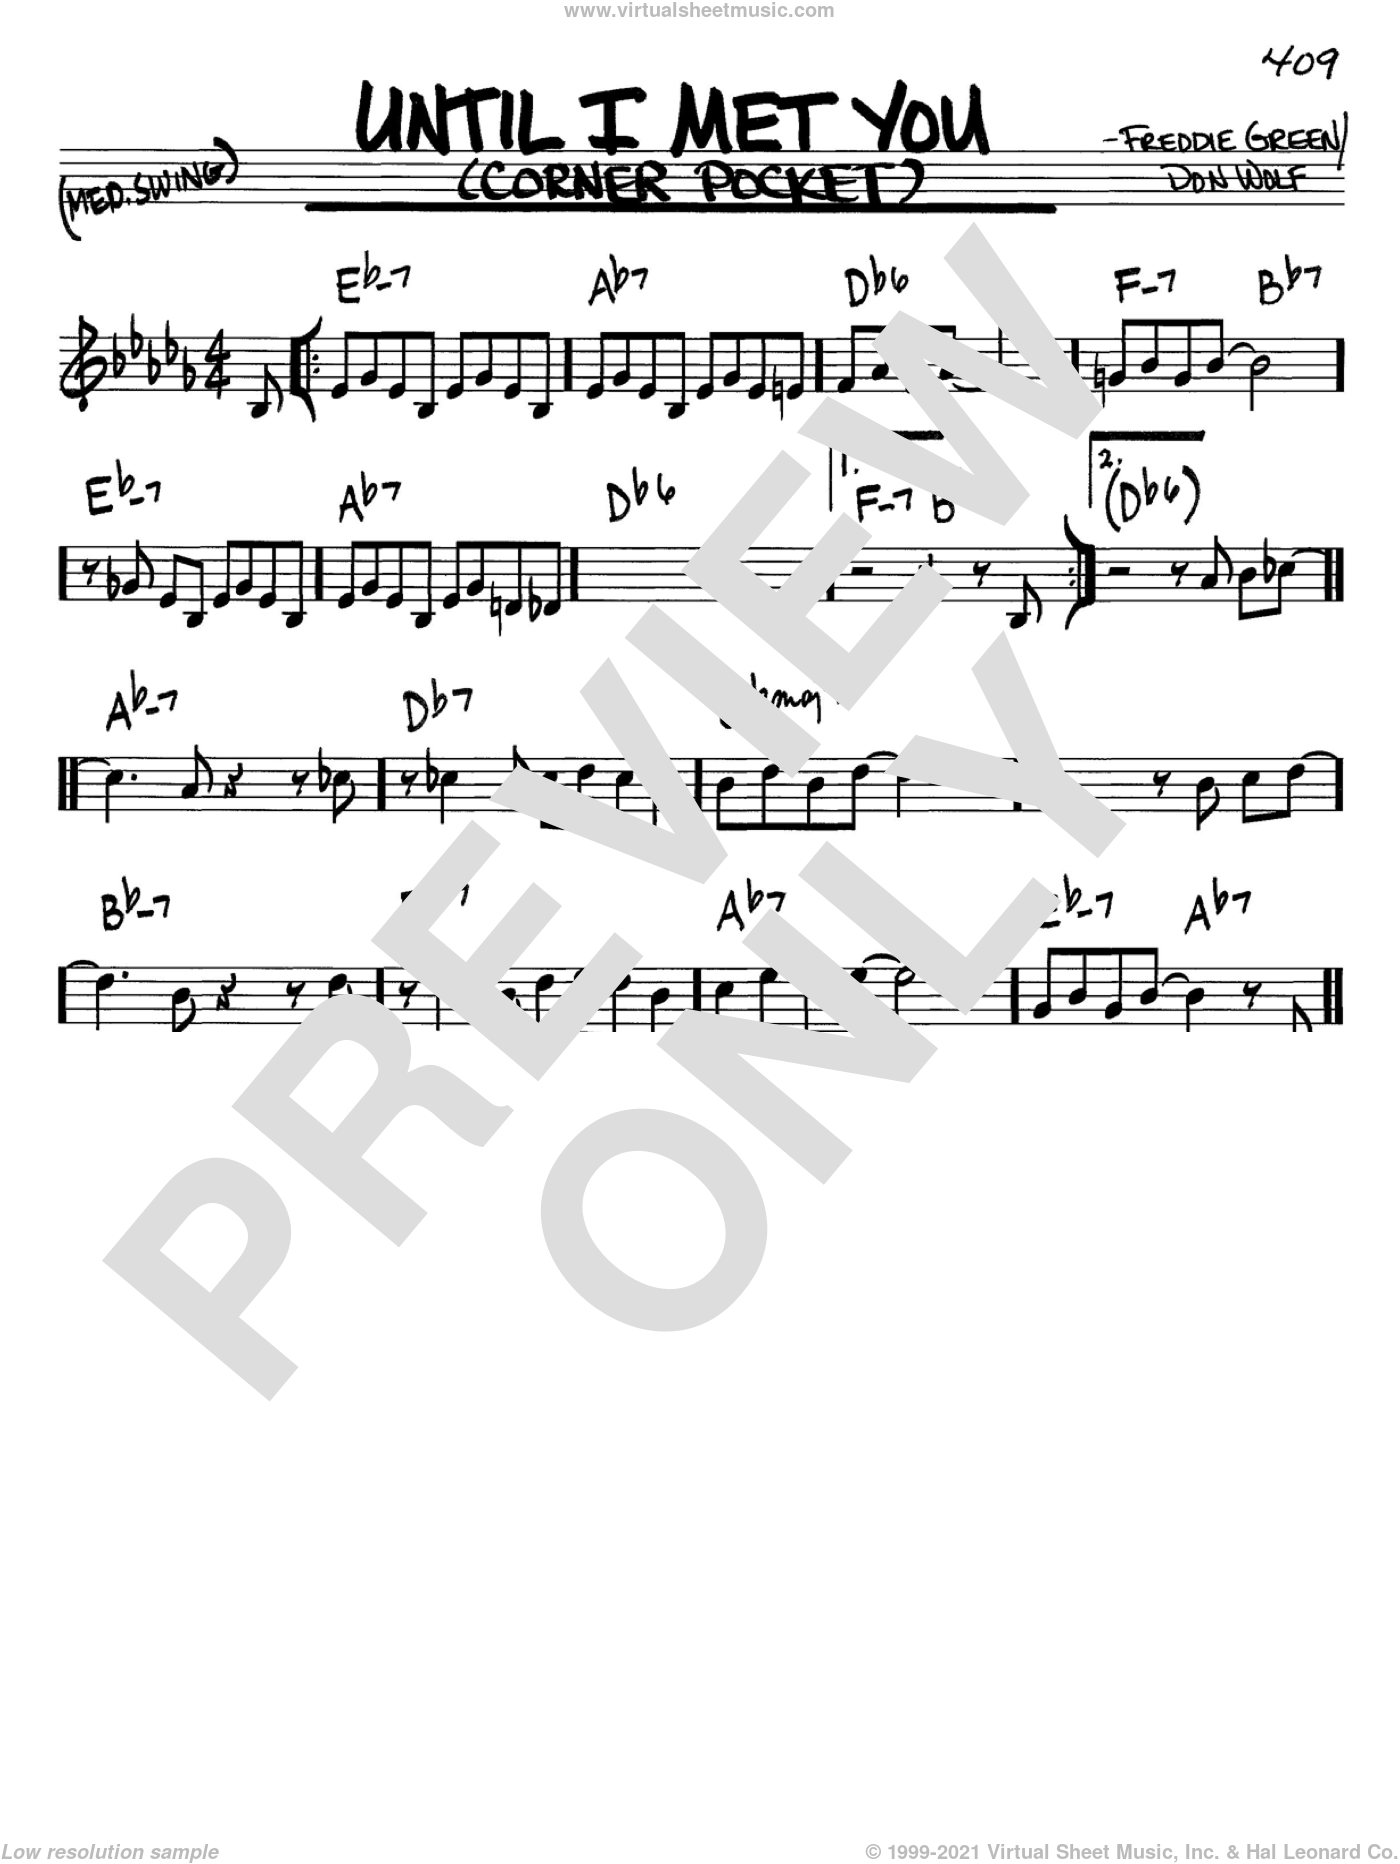 Until I Met You sheet music for voice and other instruments (in C) by Freddie Green and Don Wolf, intermediate skill level